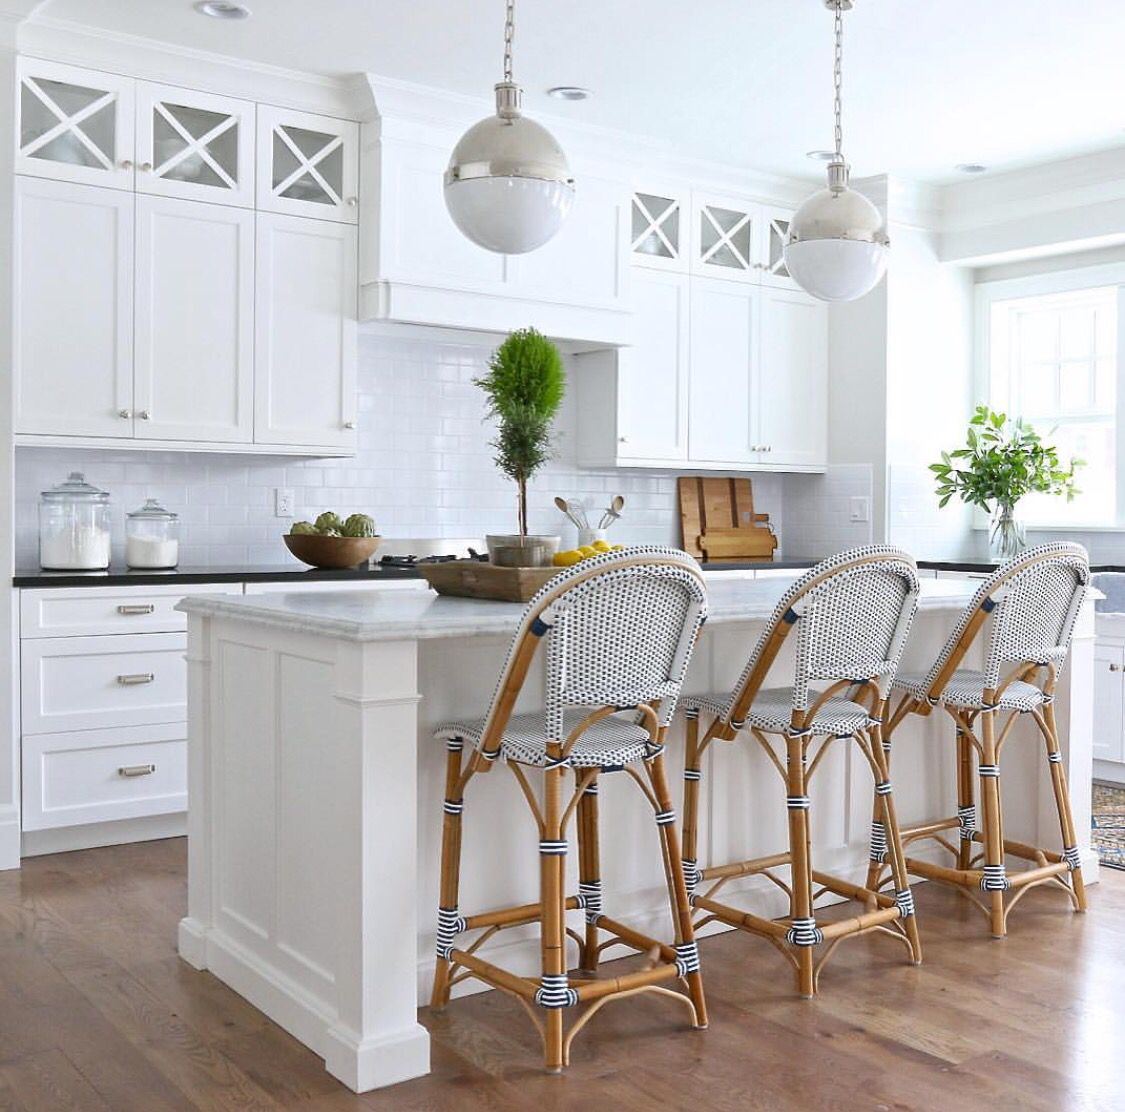 rustic wooden iron wood kitchen bar kitchens wrought white two cabinets dark floors pieces with stools island